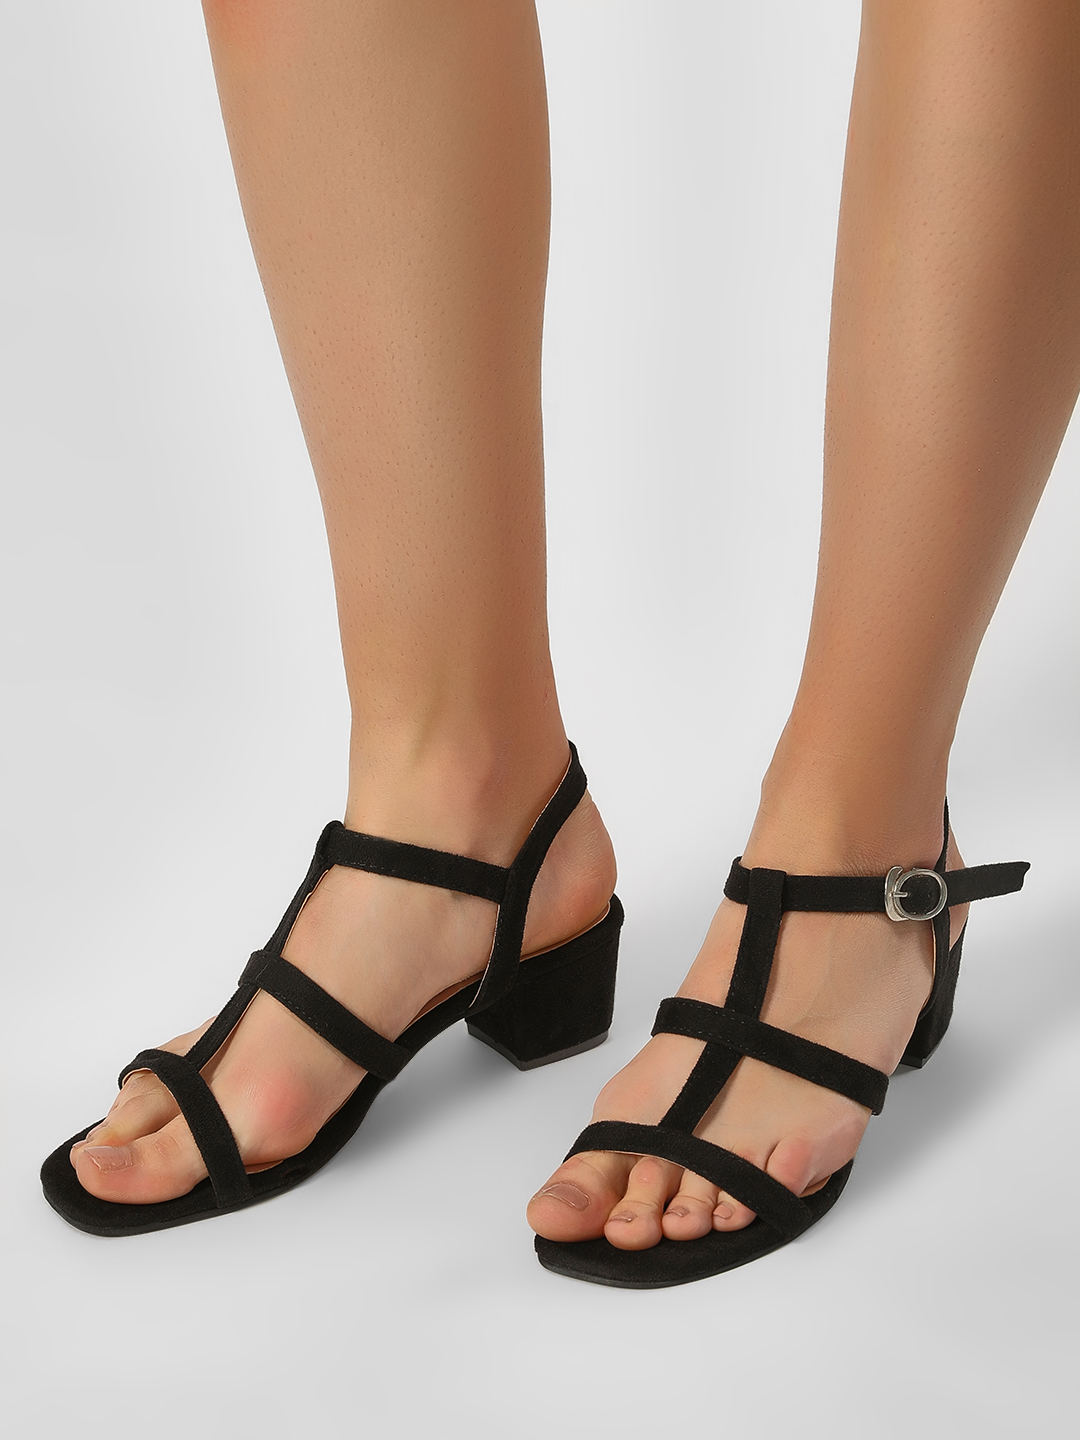 My Foot Couture Black Two Straps Ankle Sandals 1